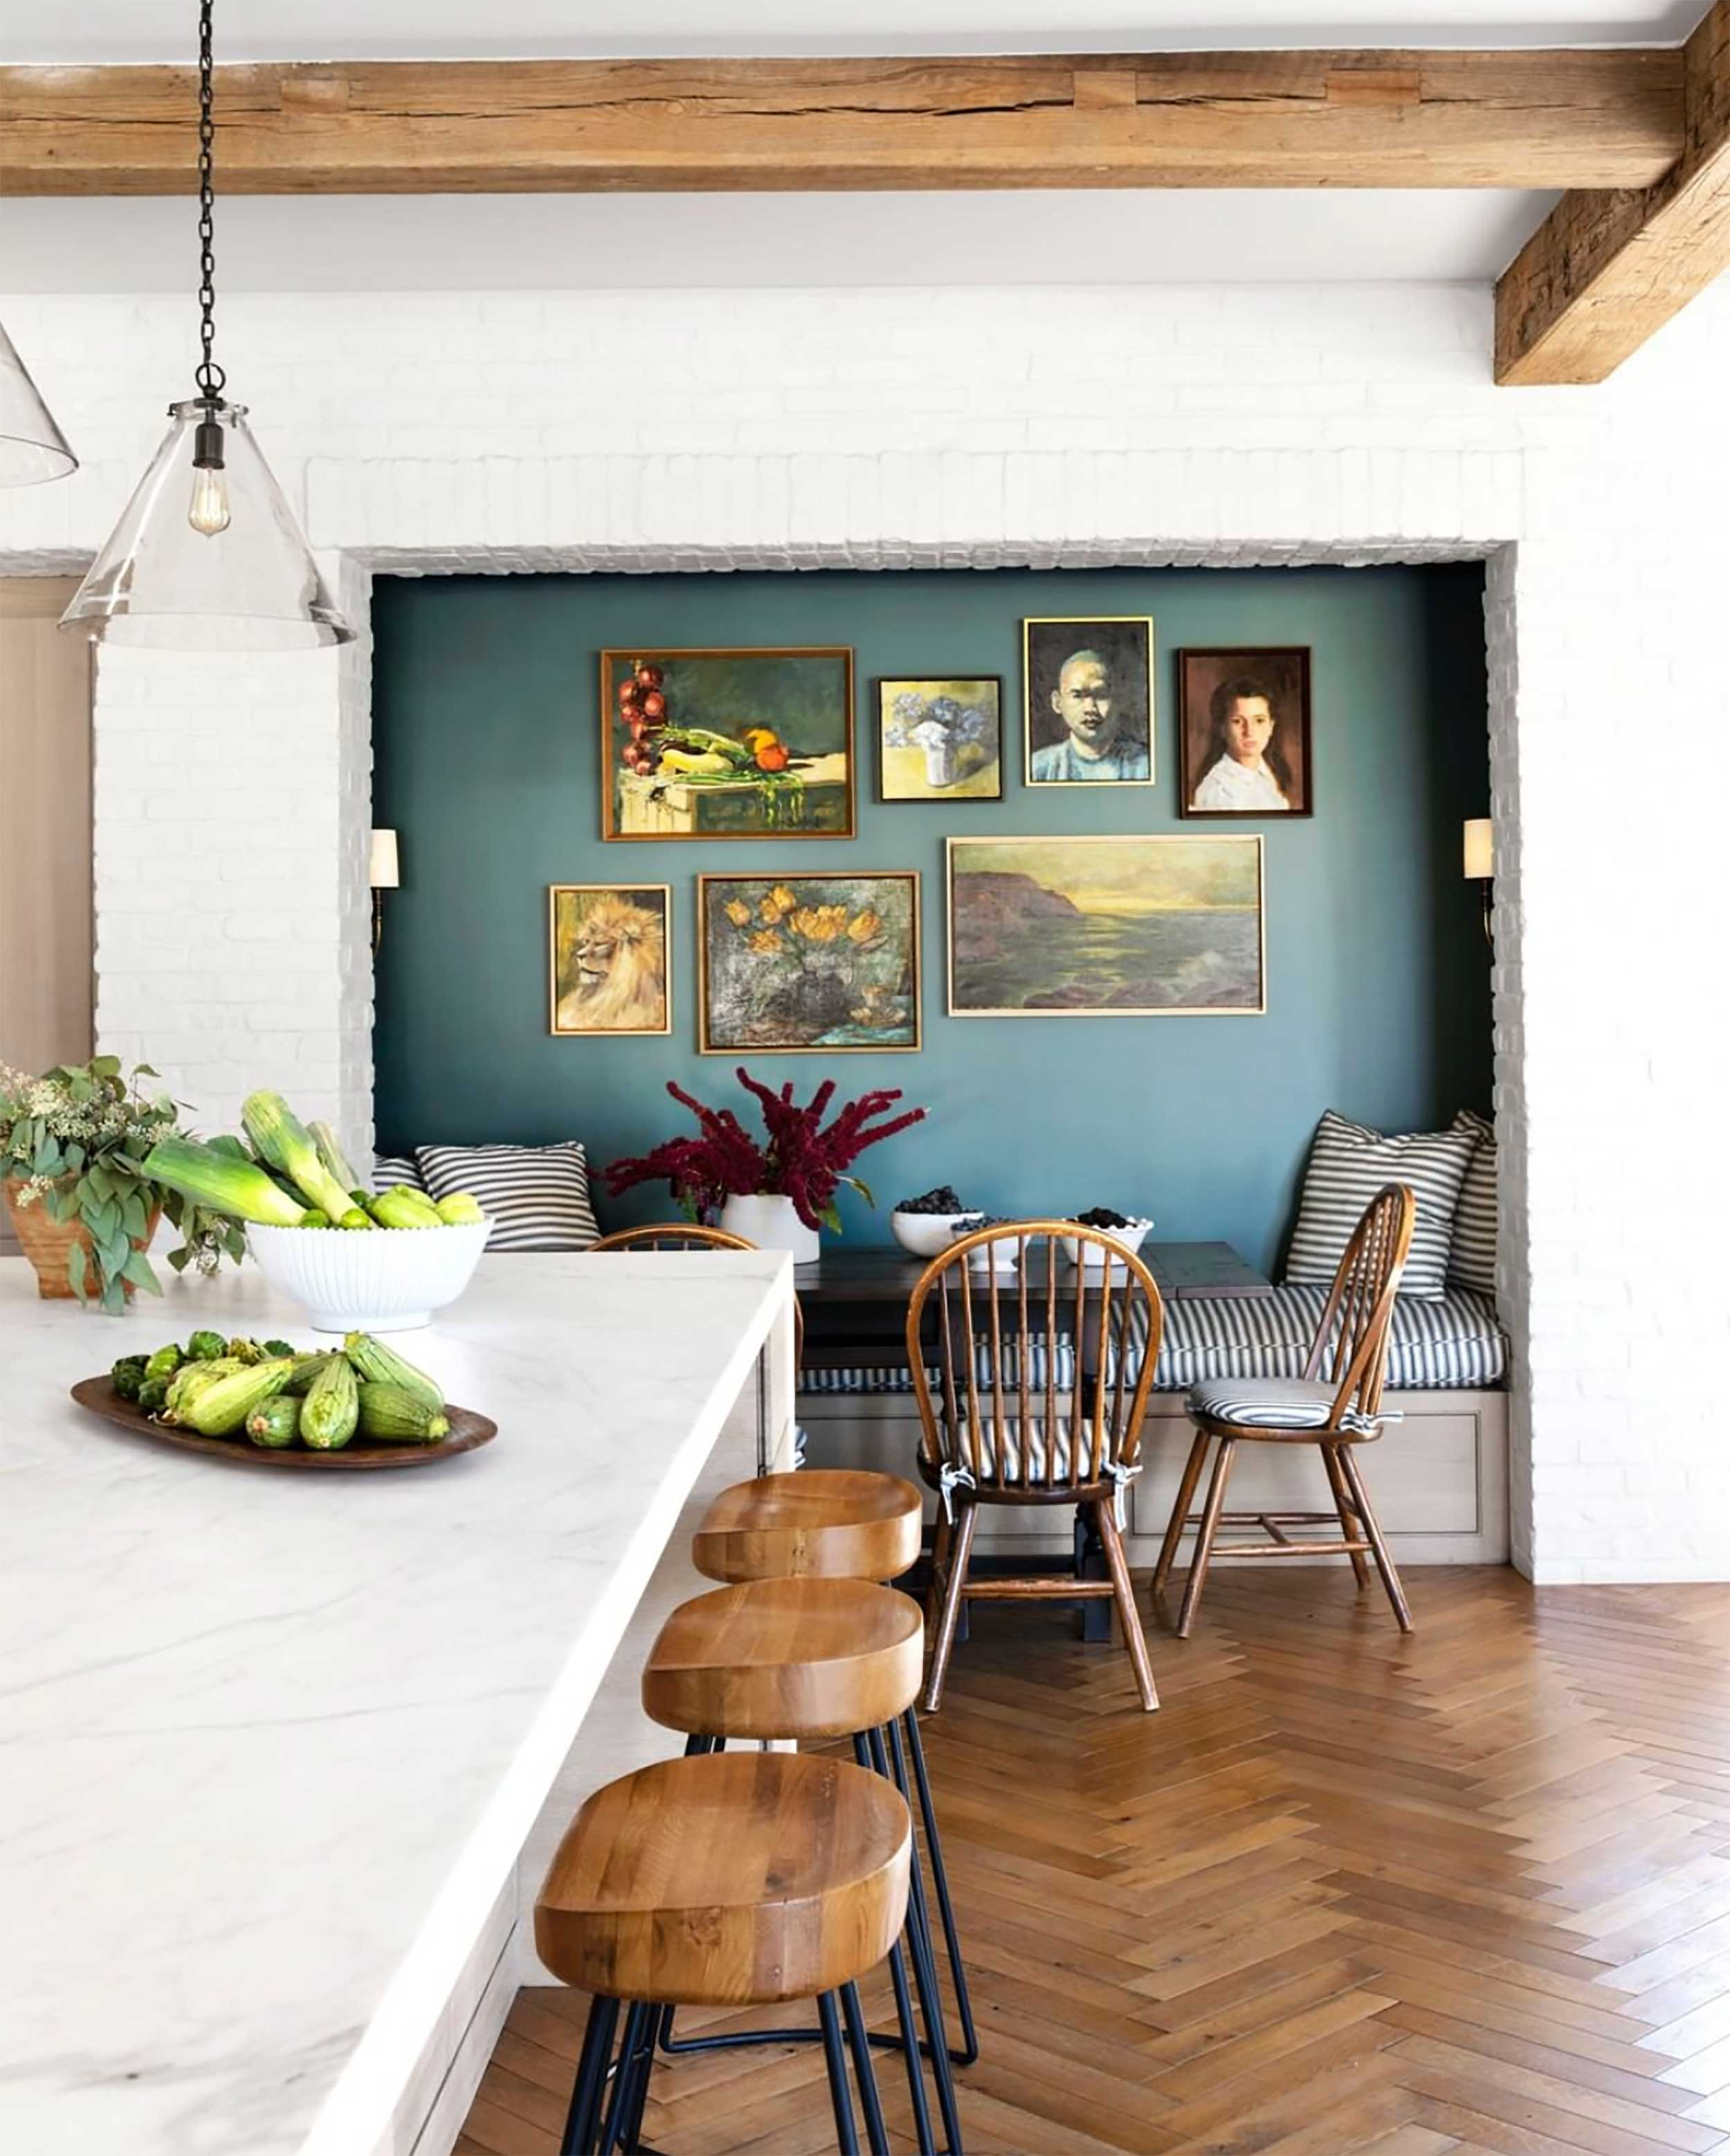 Accentuate a neutral interior with color